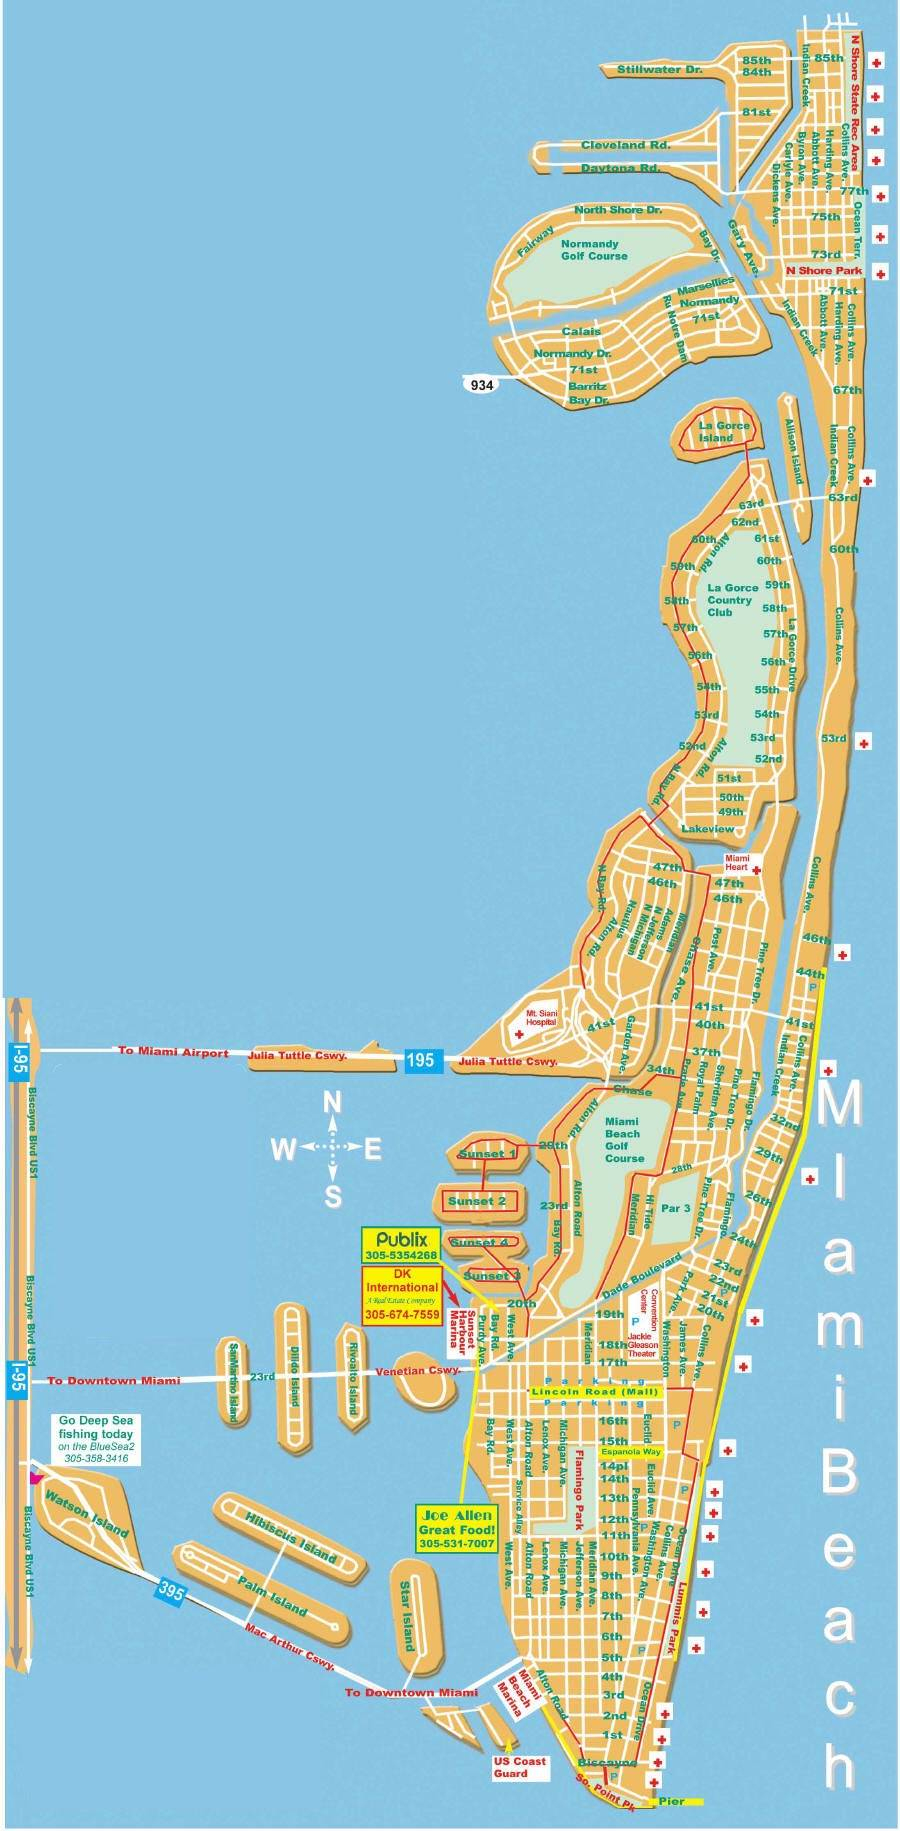 Large Miami Beach Maps For Free Download | High-Resolution And - Miami City Map Printable